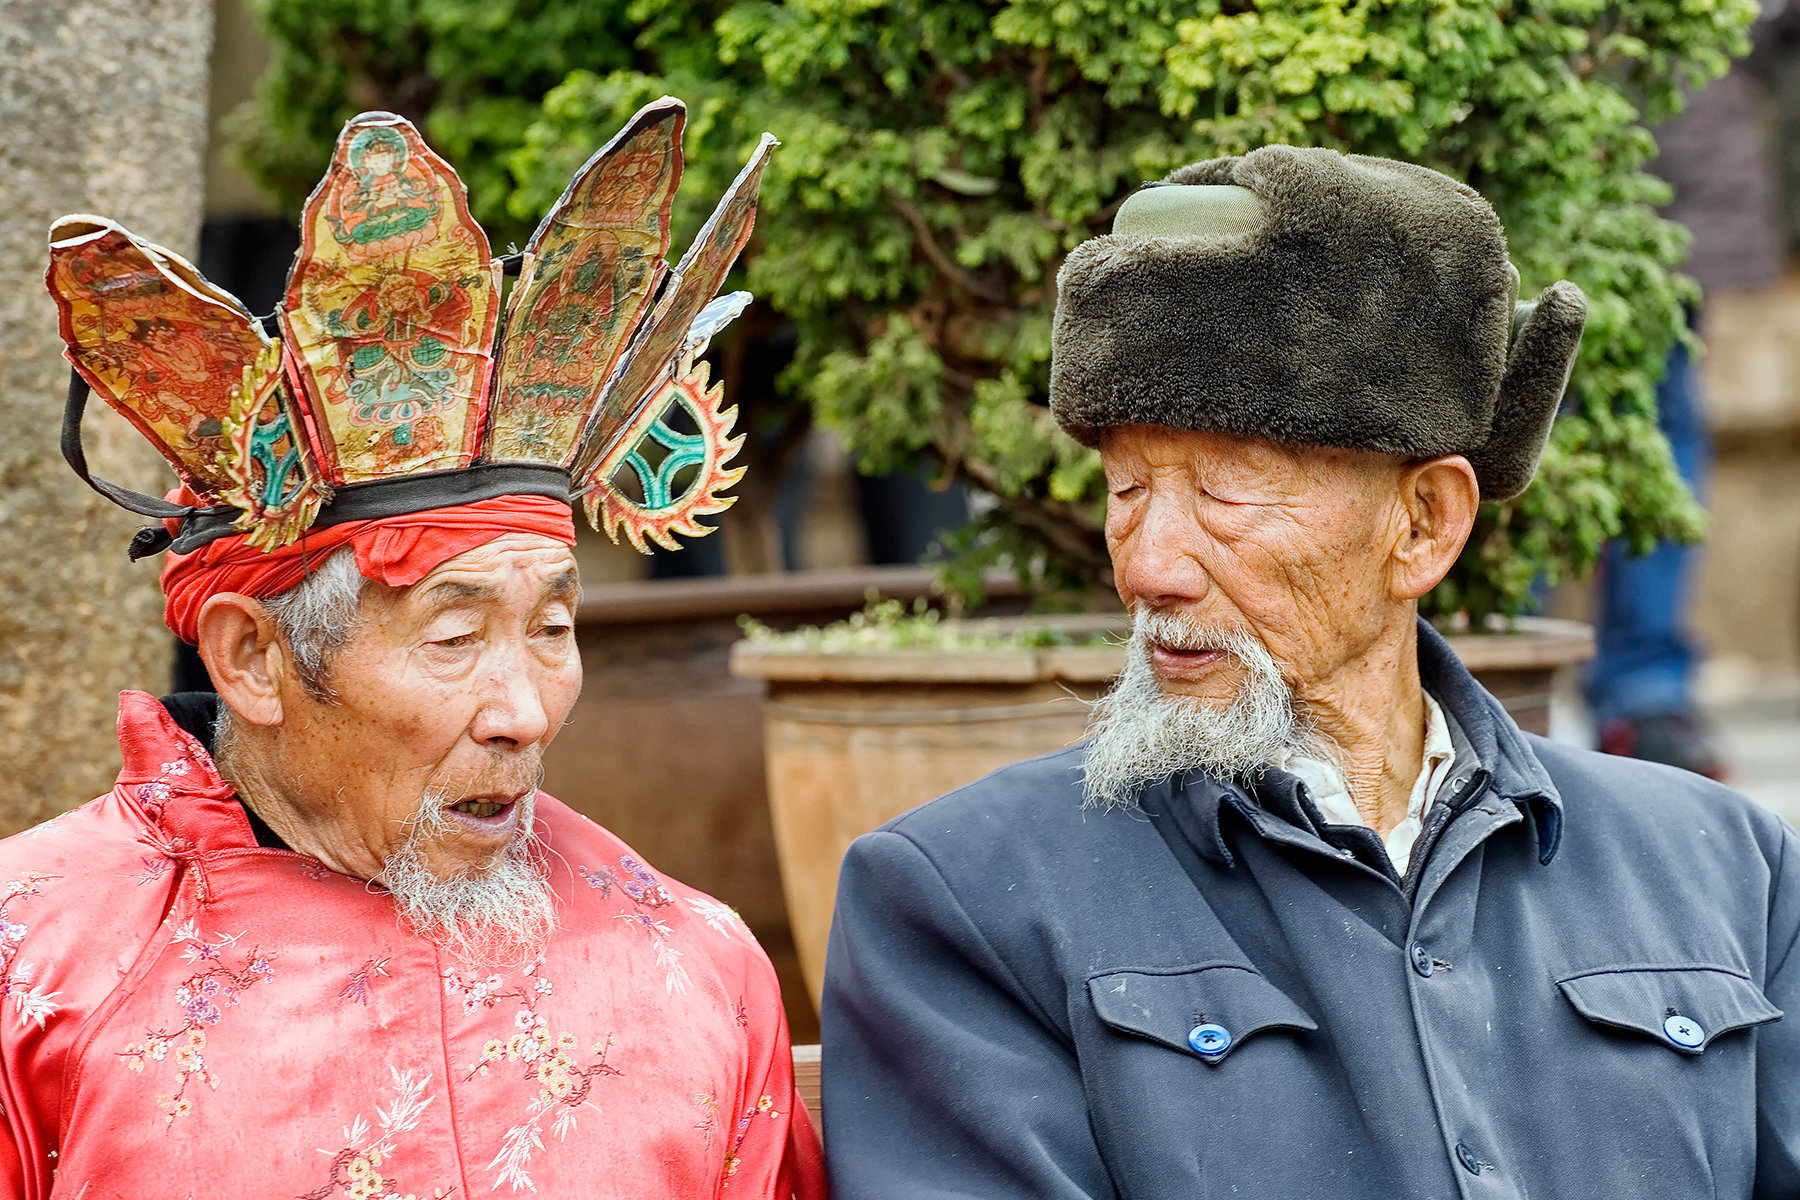 China, Naxi Dongba Shaman priest and old distinguished gentleman sitting on a bench talking, Lijiang, Old City, Sifang Square, Yunnan Province